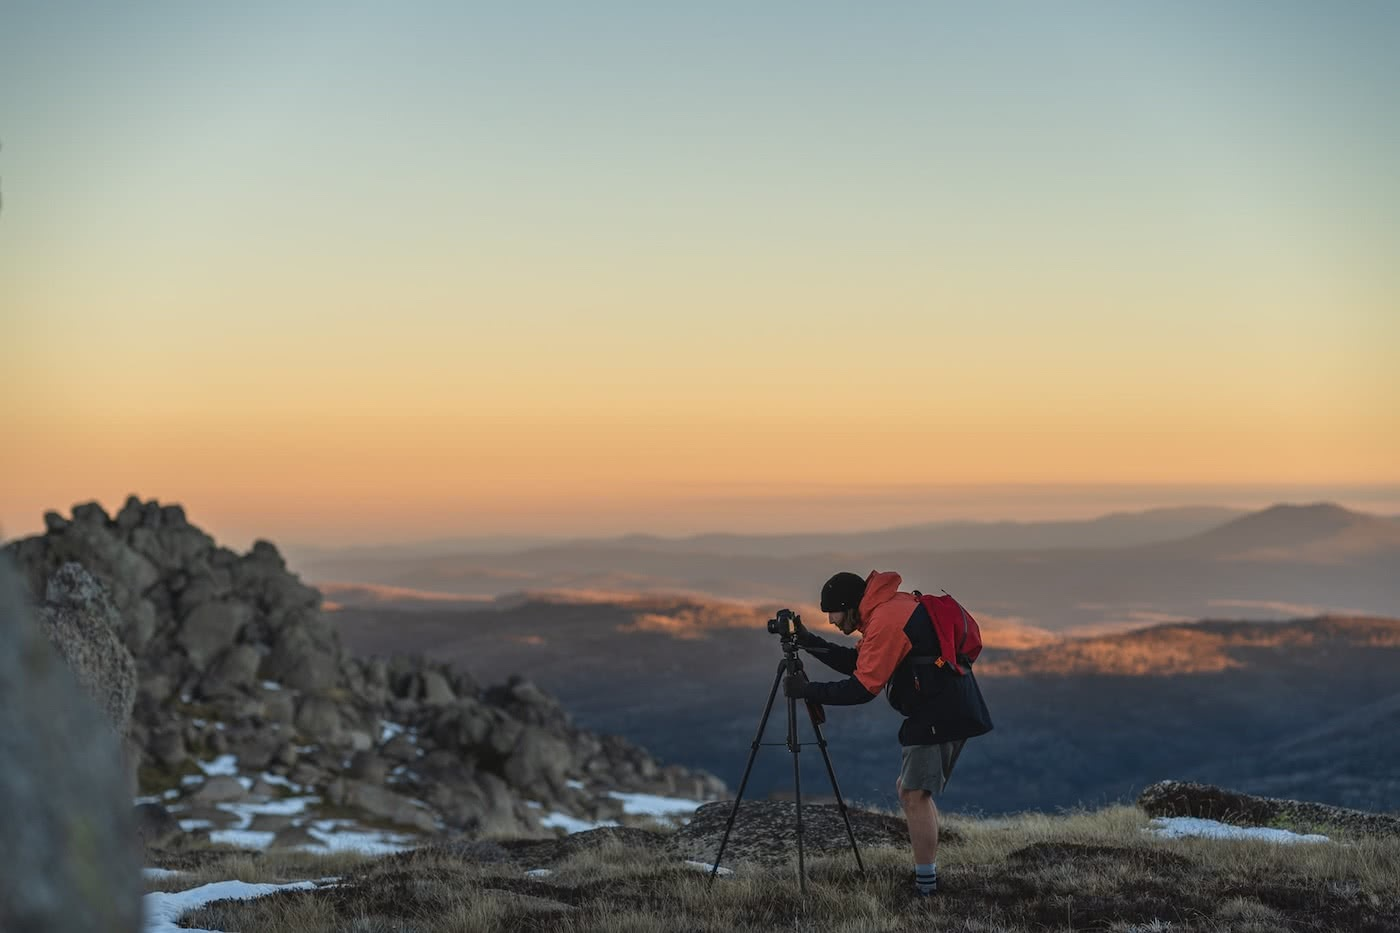 Spring Snow Campout // Main Range (NSW) by Mattie Gould, photo by Jon Harris, sunset photography